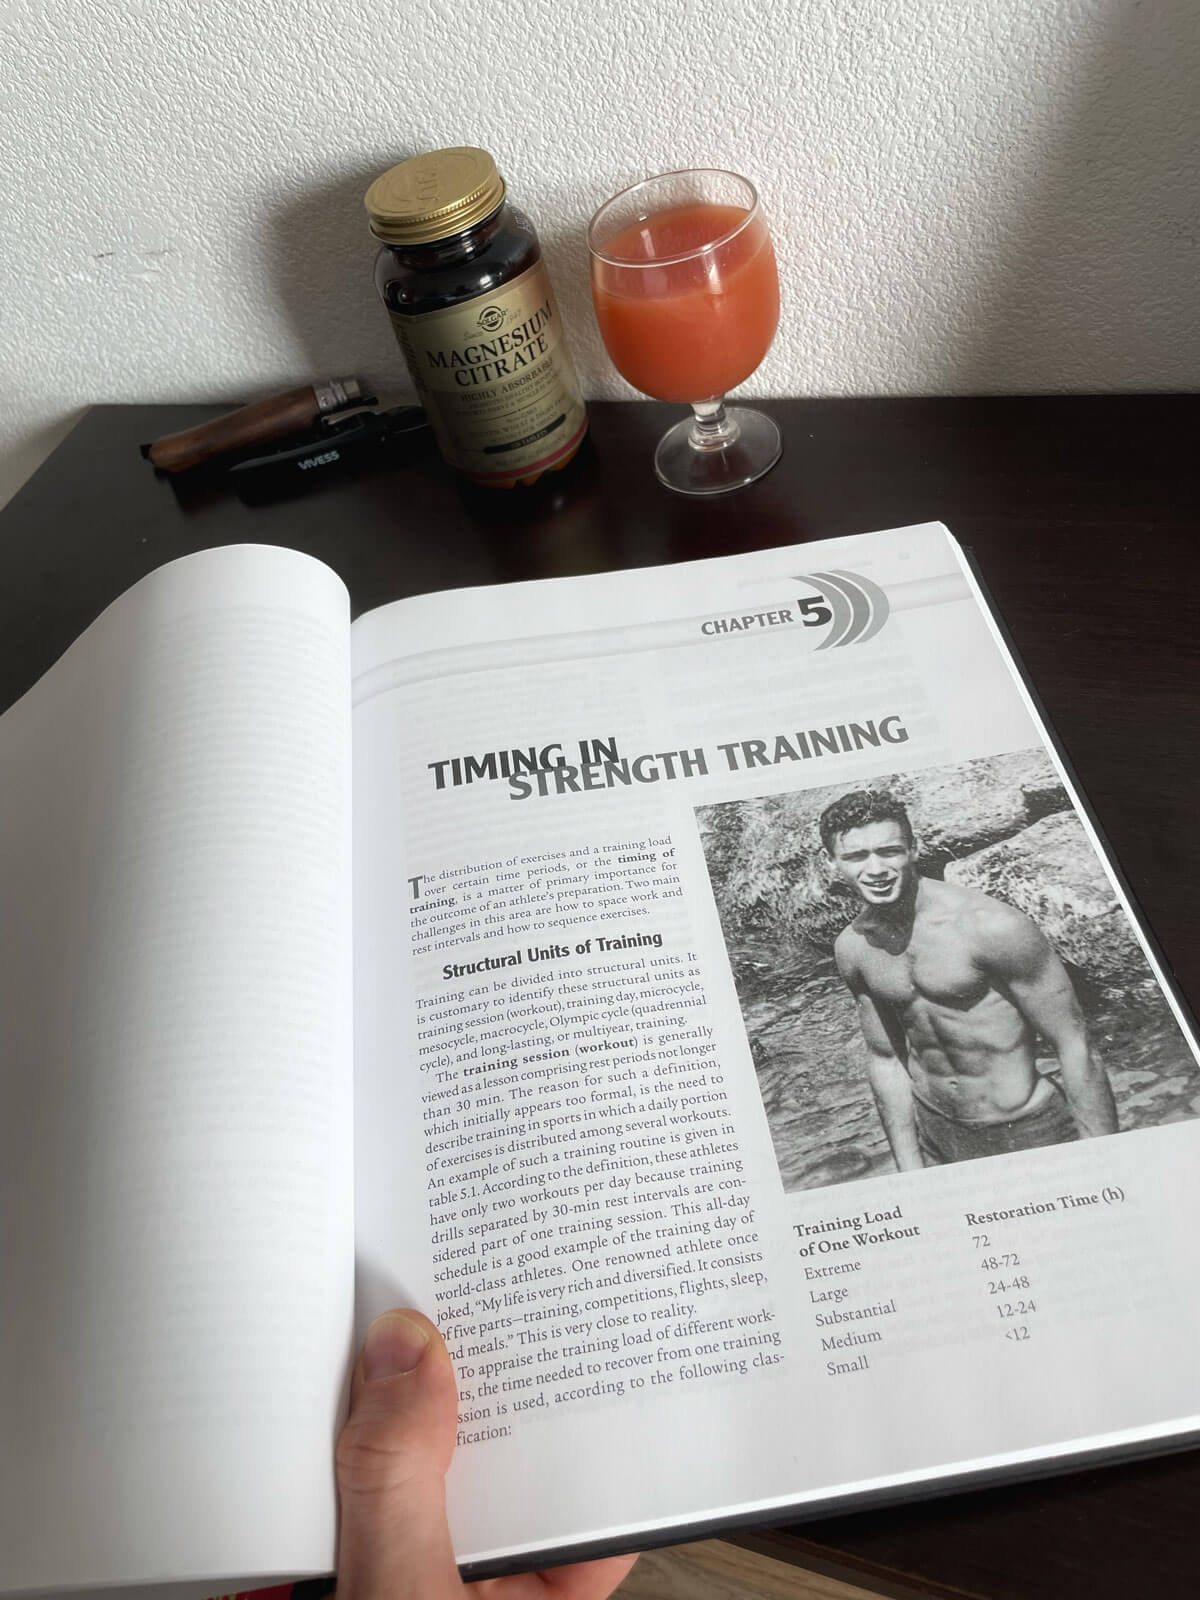 Science and Practice of Strength Training by Vladimir Zatsiorsky - Chapter 5